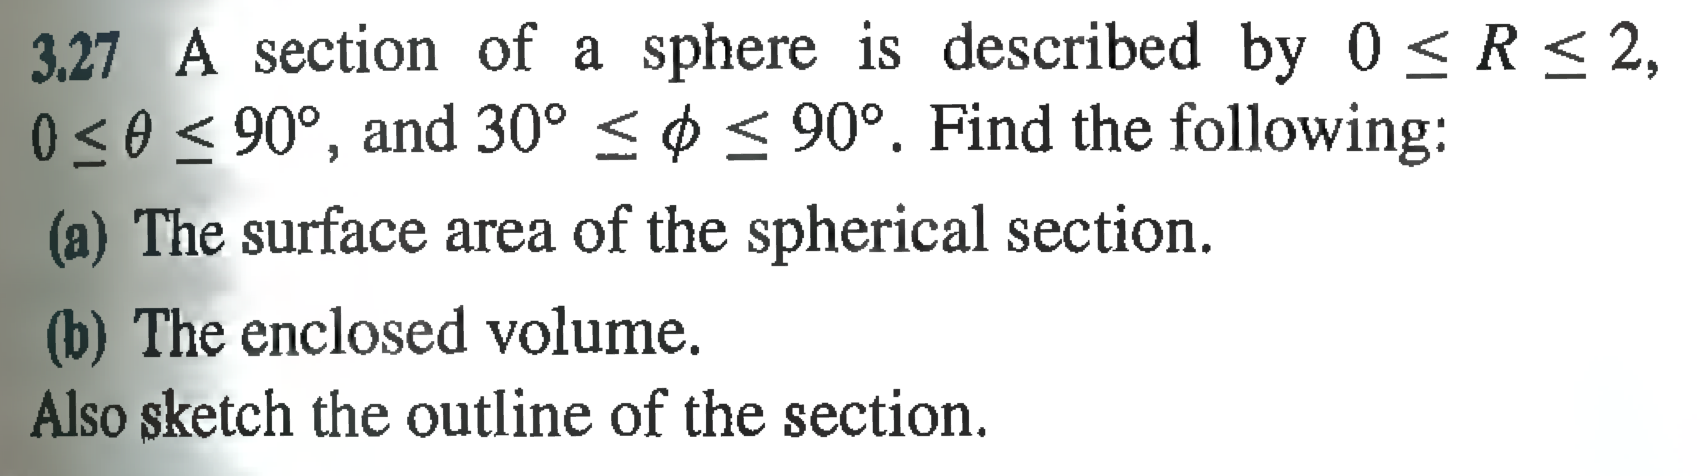 A section of a sphere is described by 0 R 2, 0